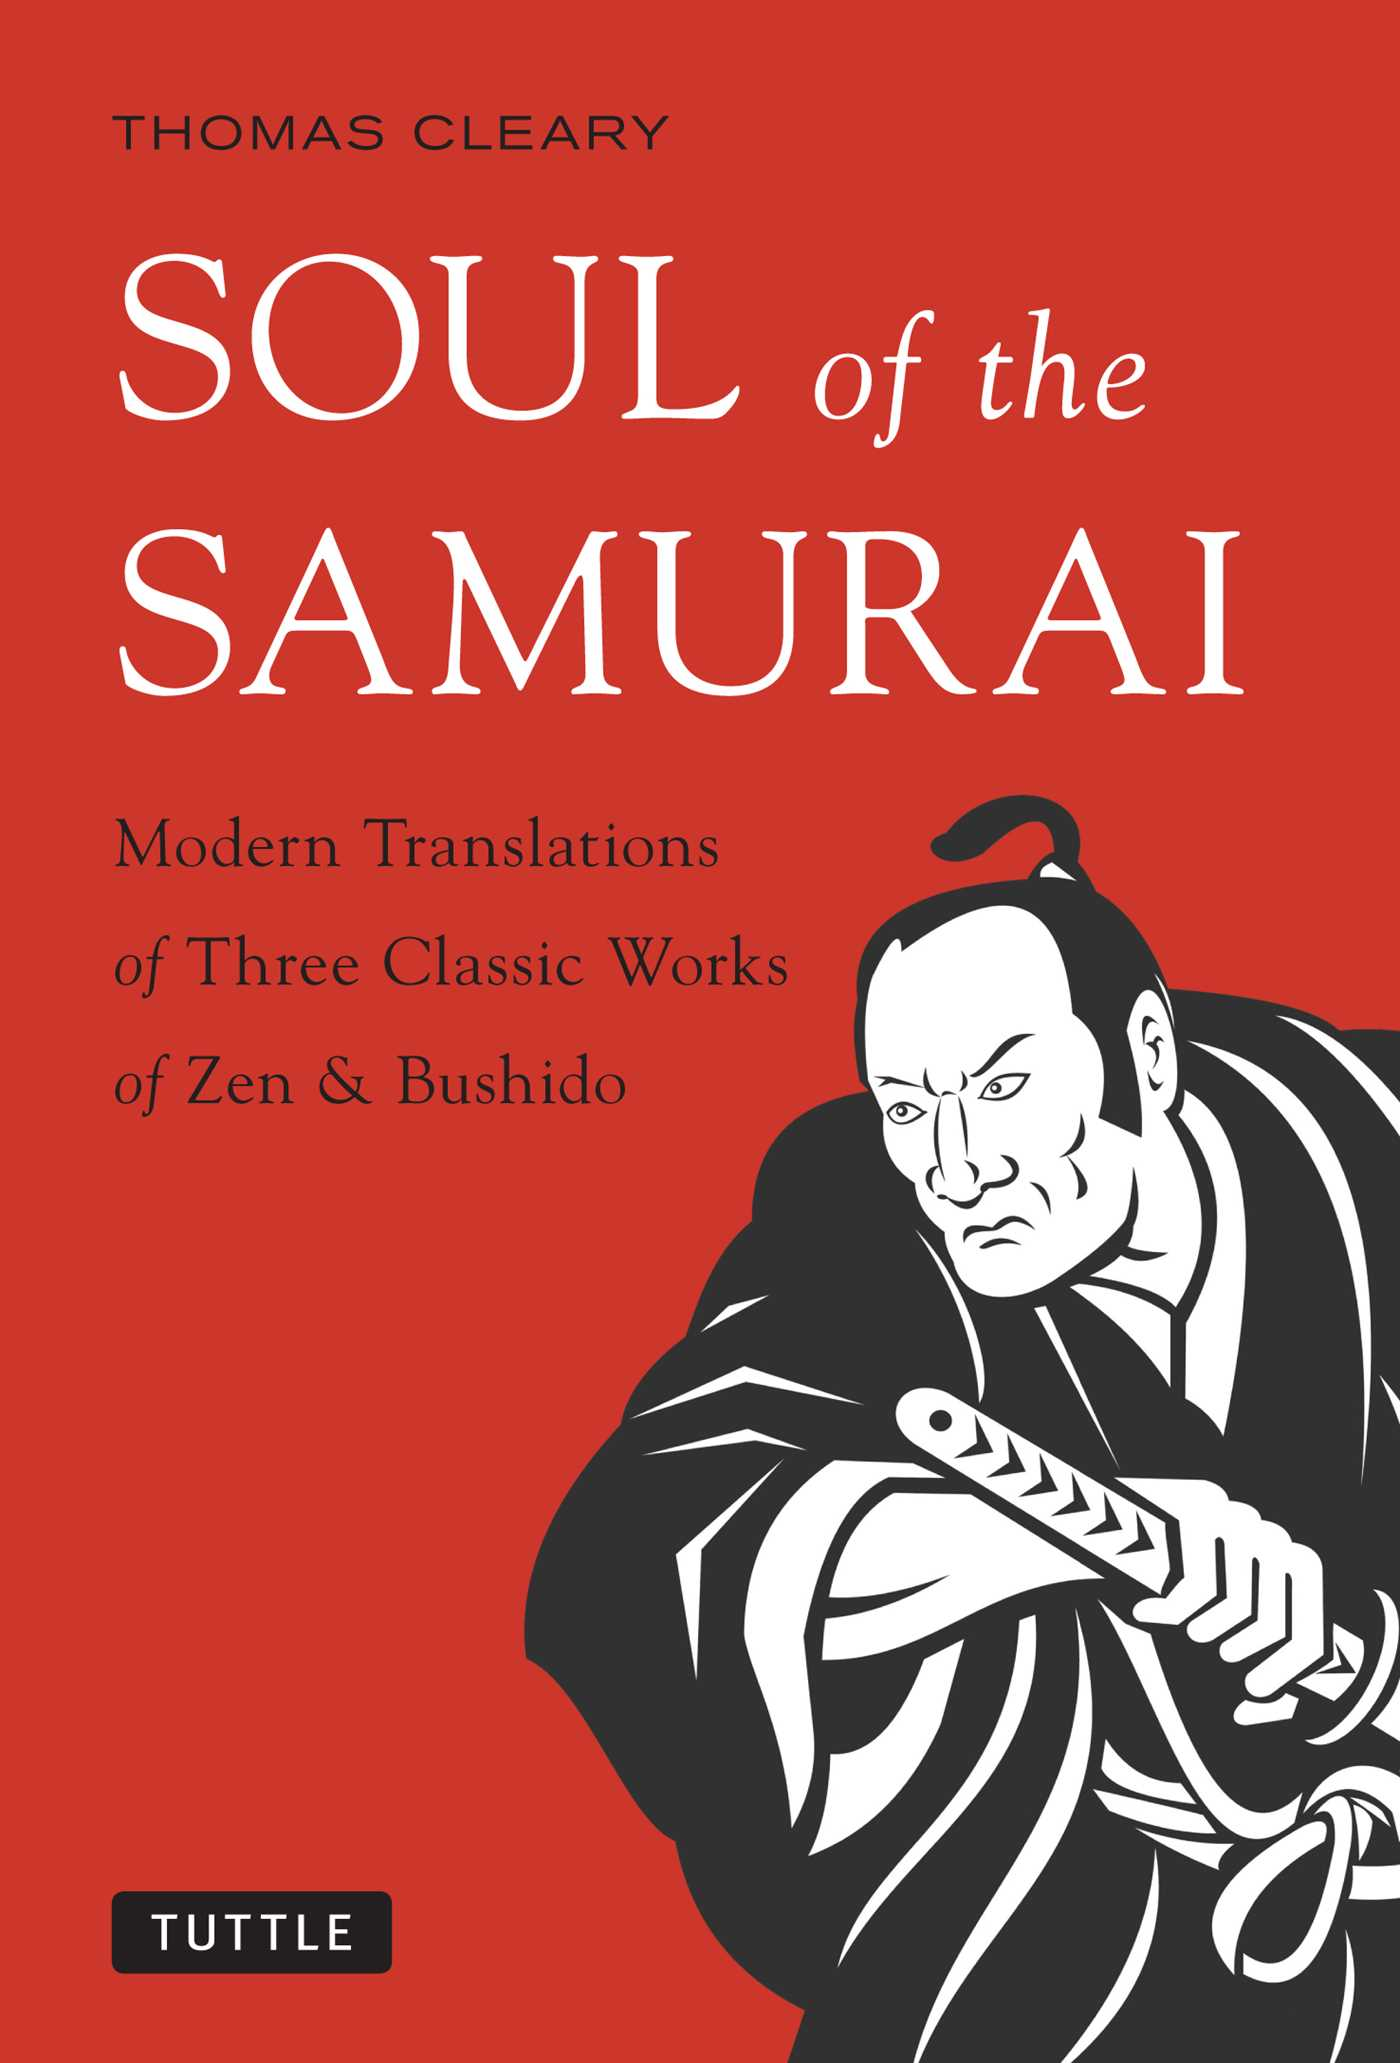 Soul of the samurai 9784805312919 hr